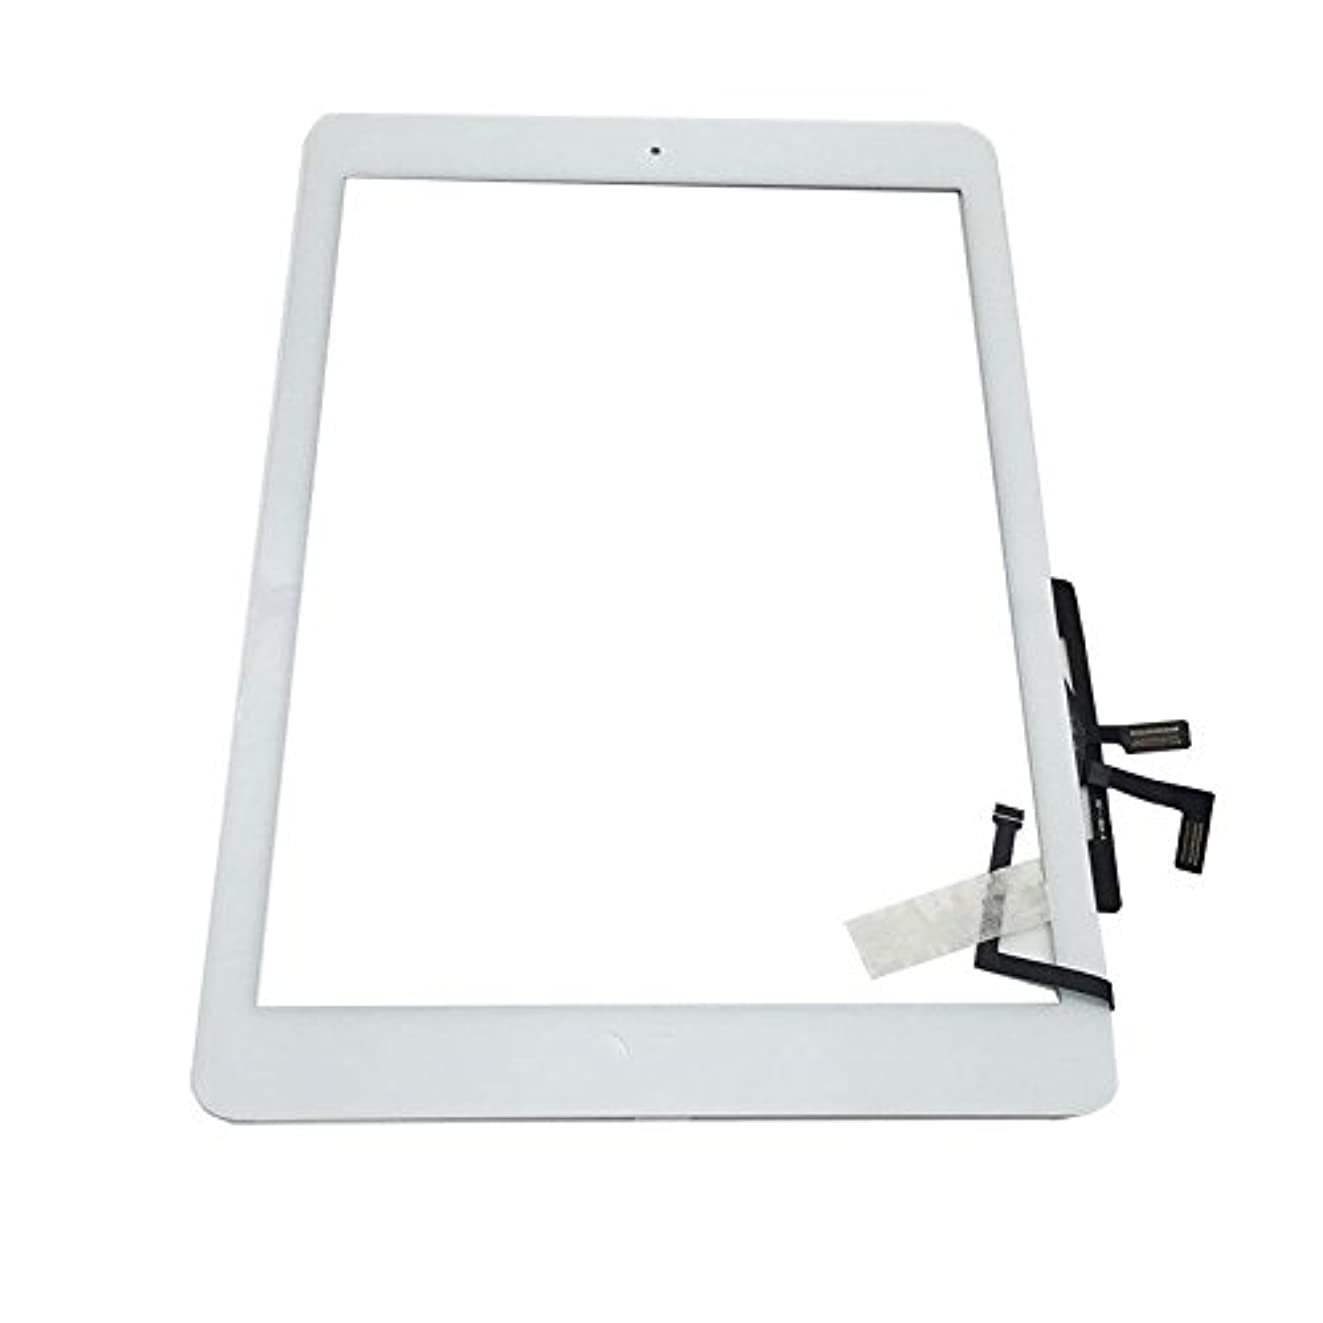 Digitizer Replacement Touch Screen for Ipad Air 1 1st Generation A1474 A1475 A1476, Aiiworld 9.7